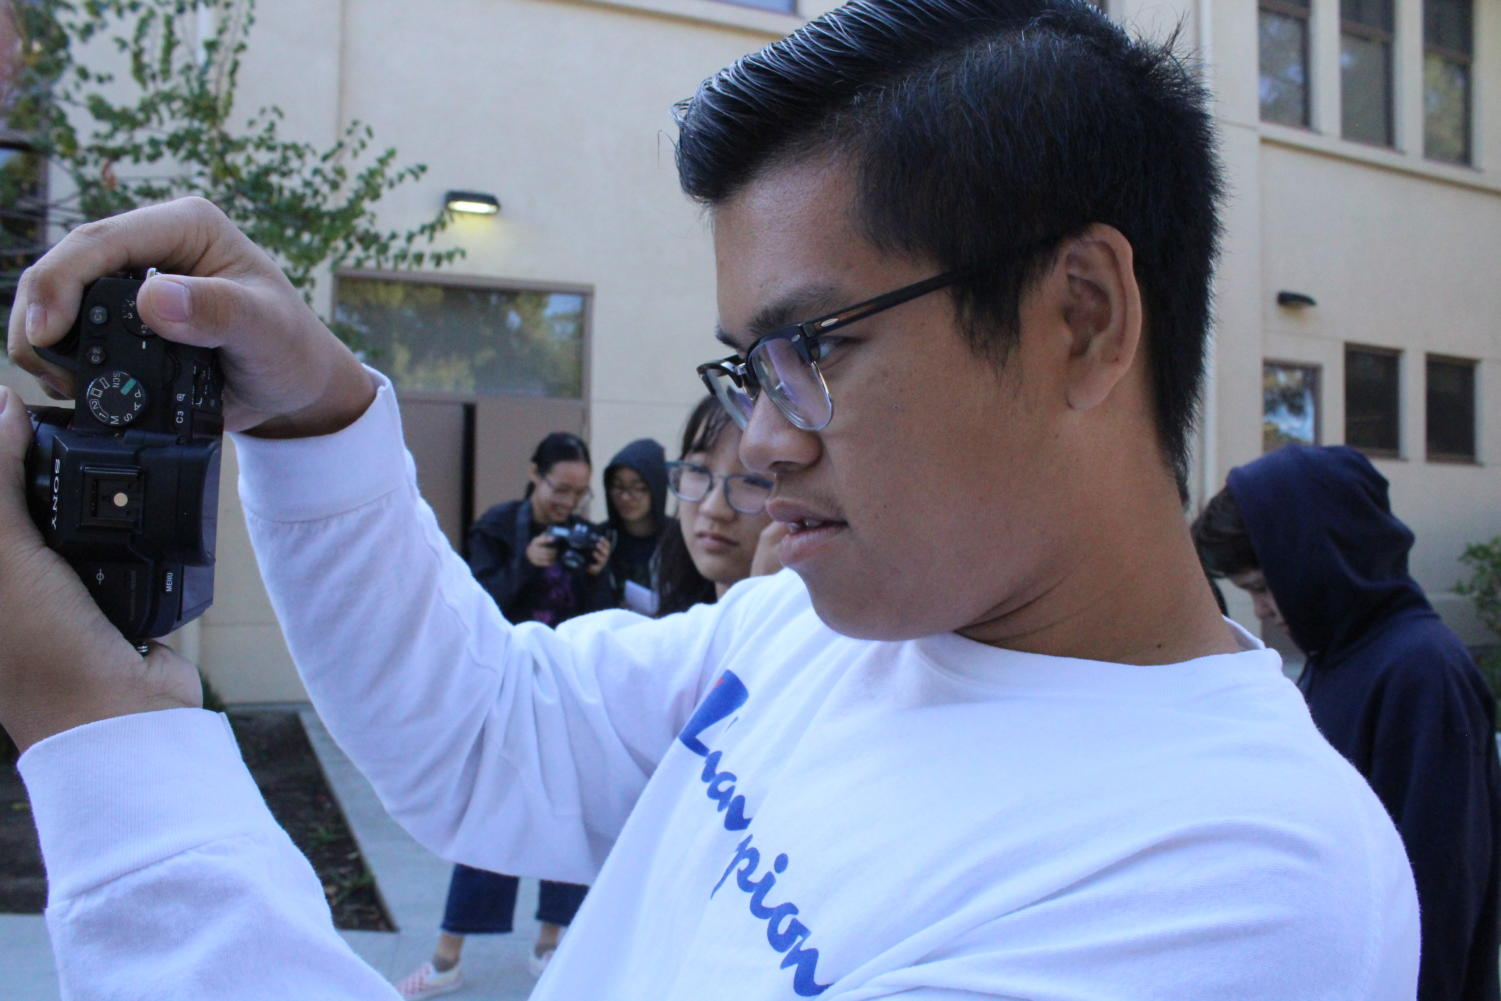 A student participates in a photography workshop during JEA  NorCal Media Day.